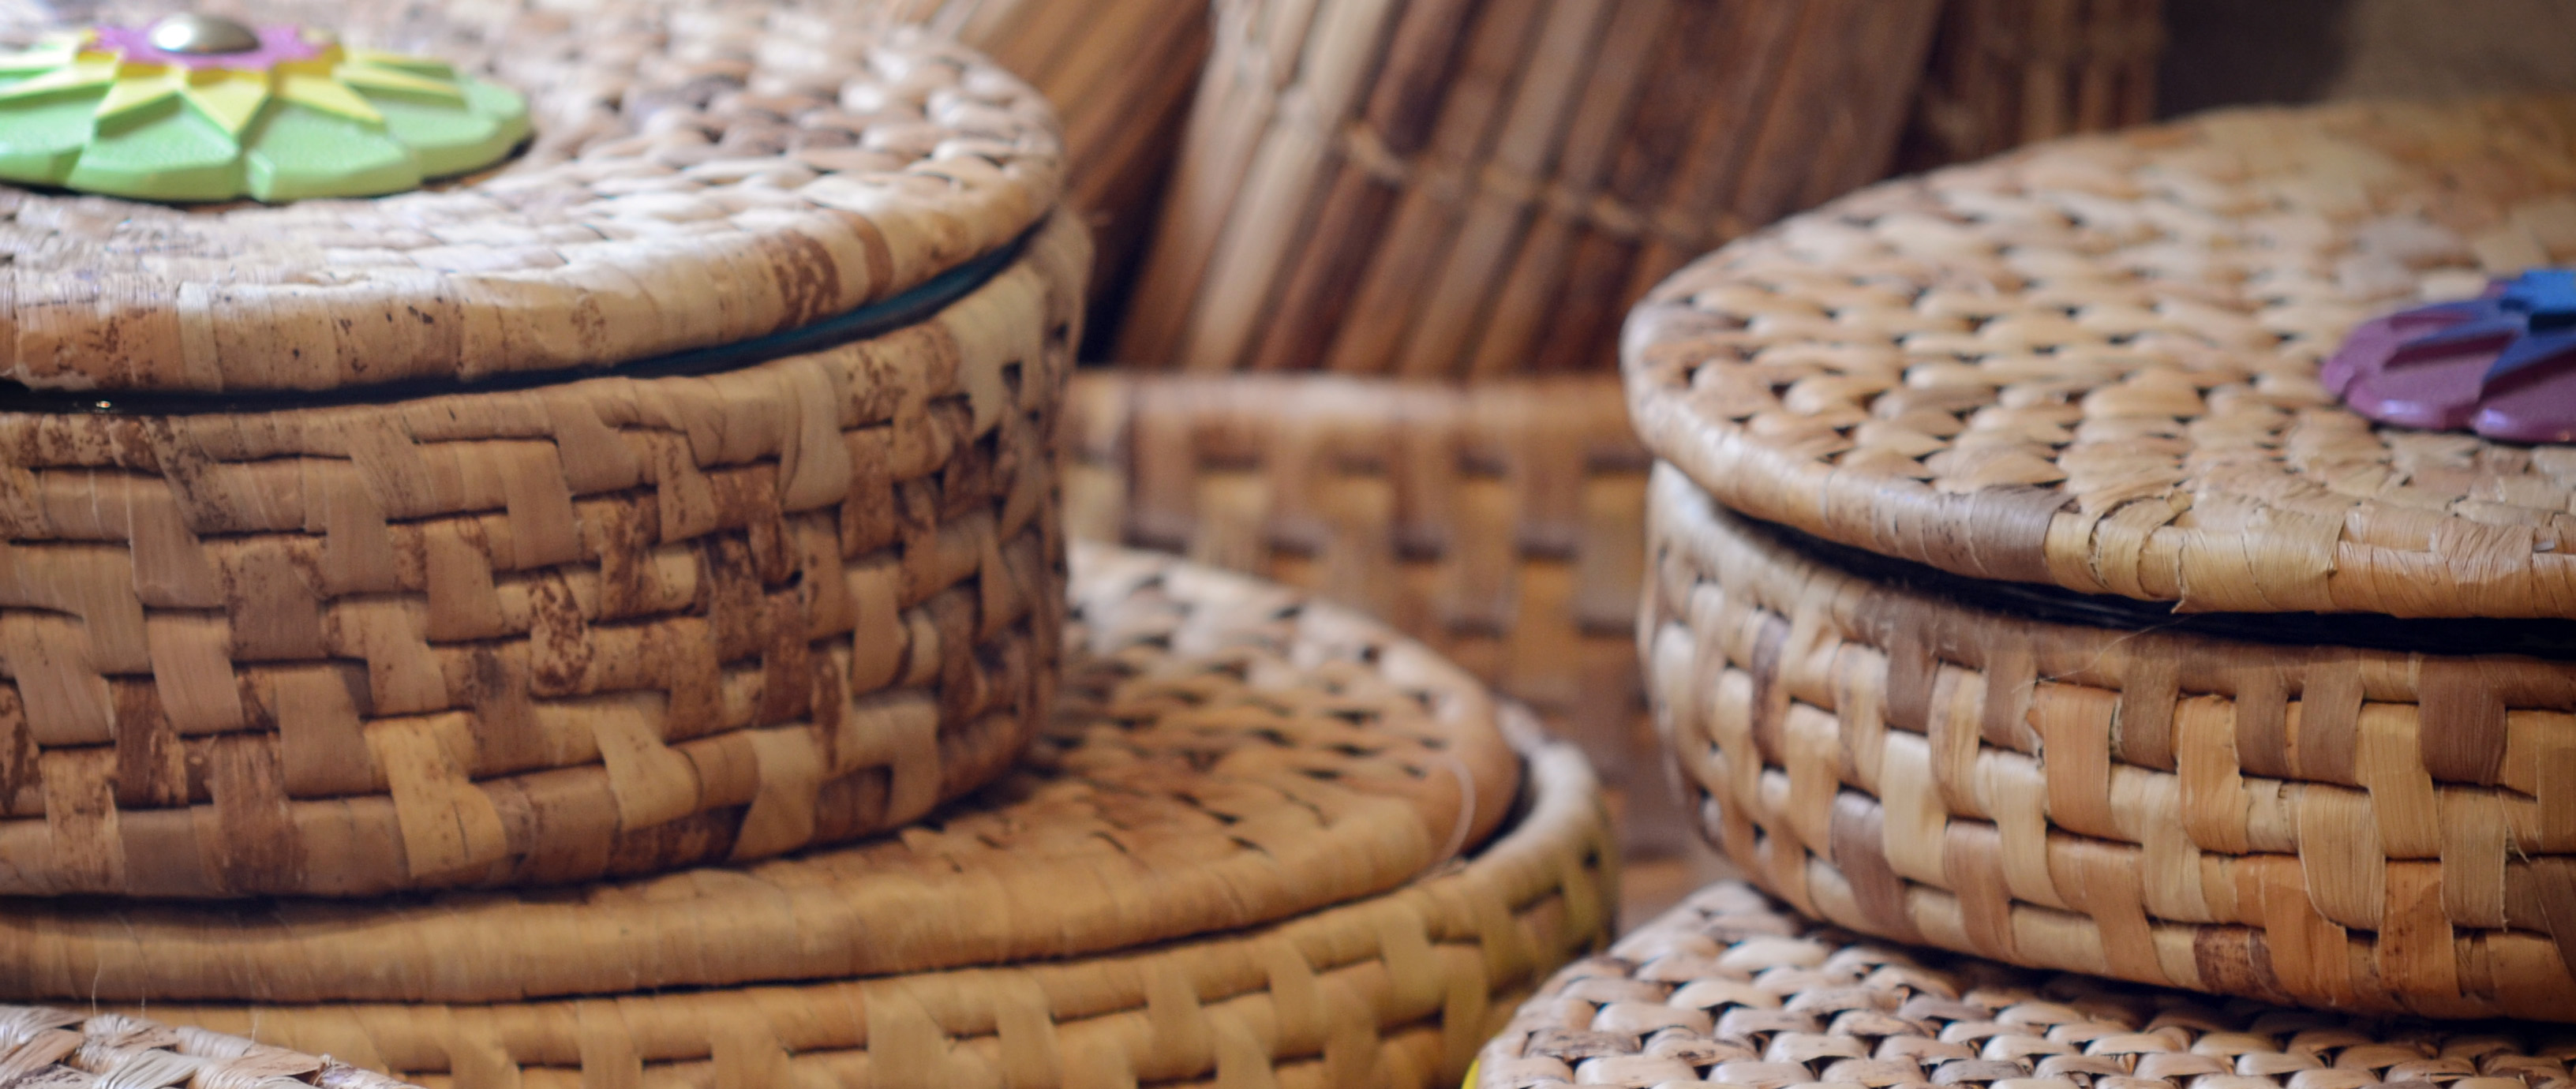 Basket Weaving From Banana Leaves The Encyclopedia Of Crafts In